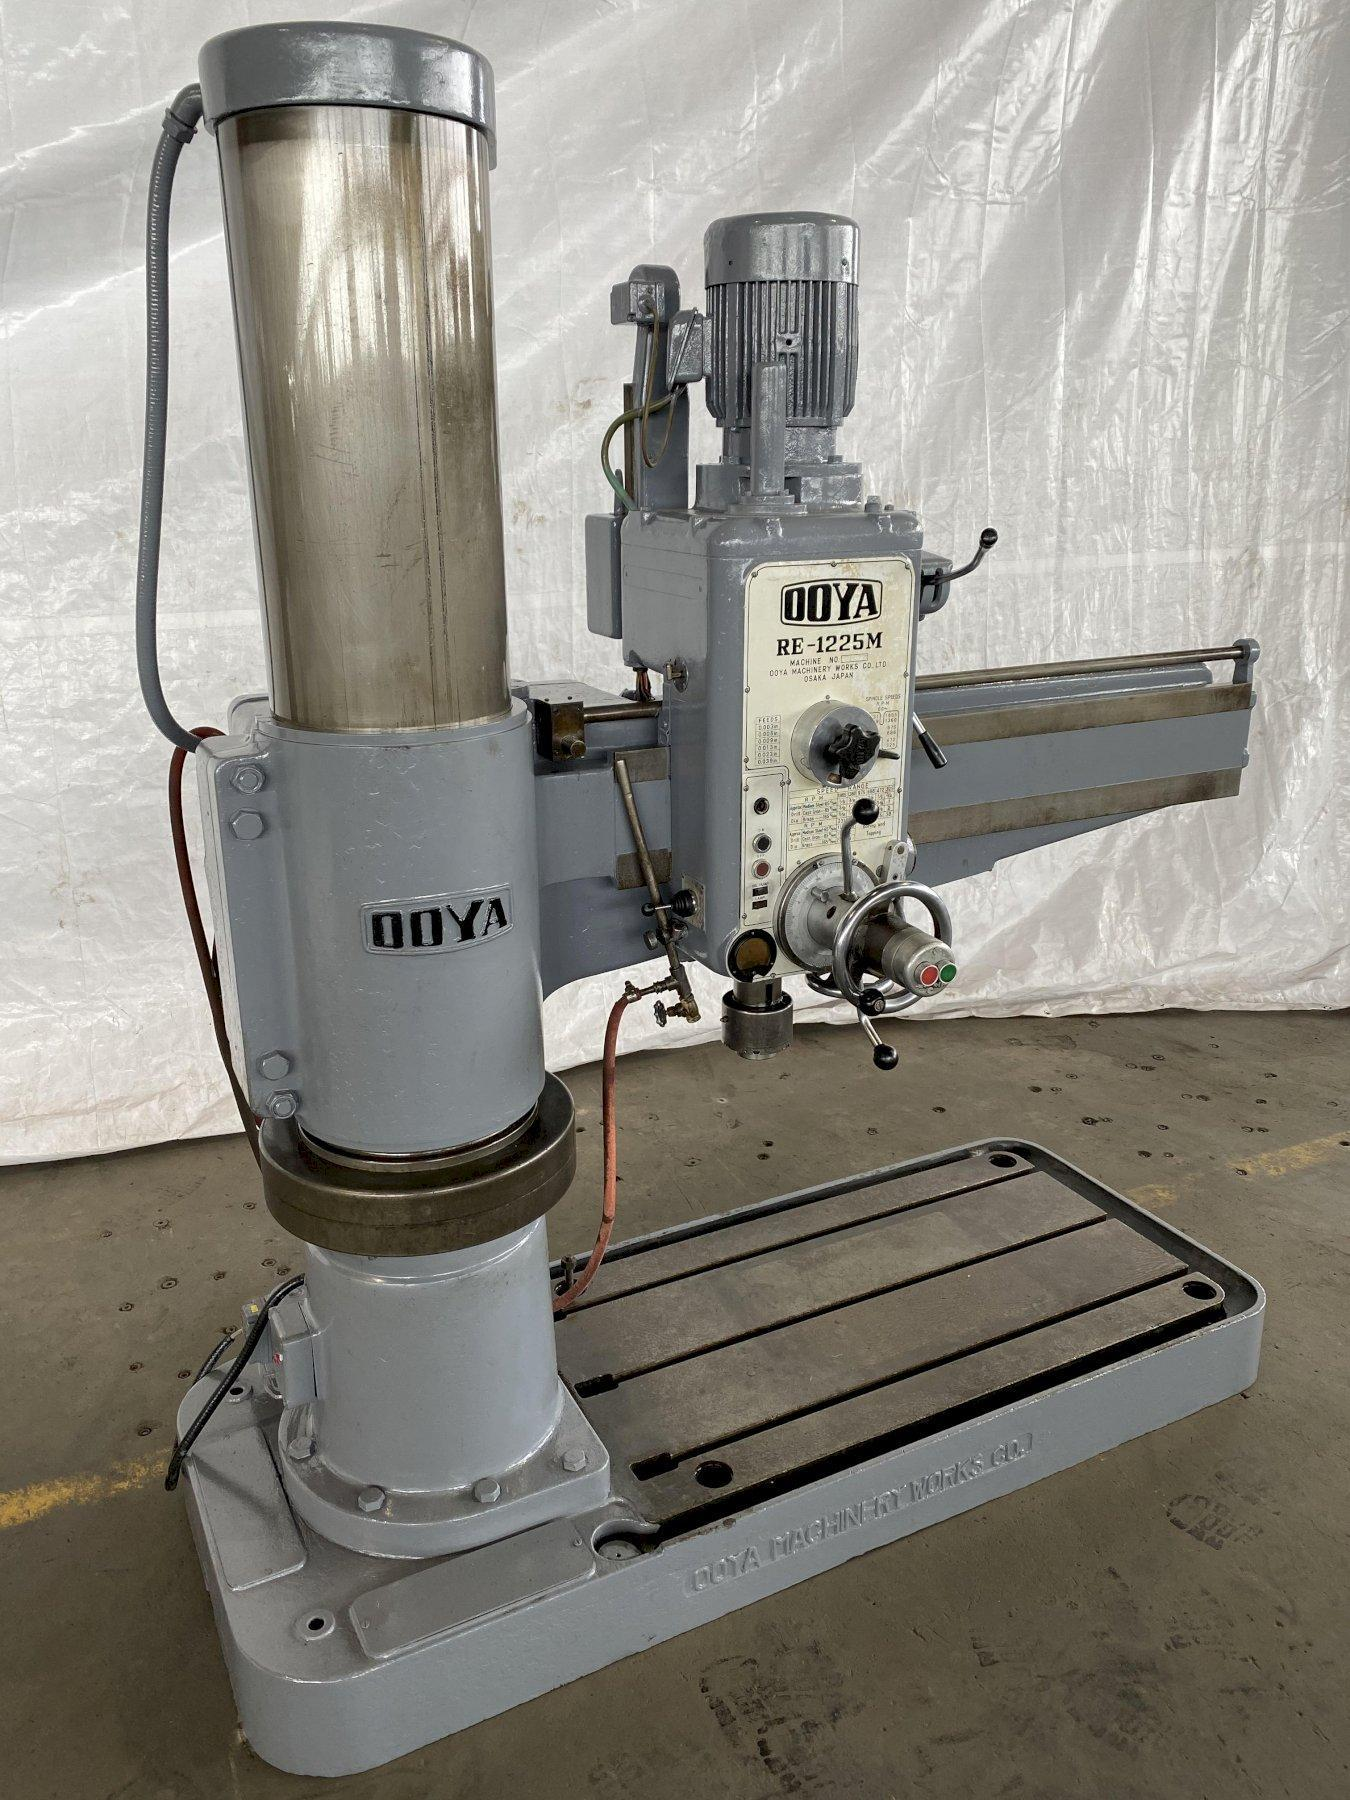 "4' x 12"" OOYA RE-1225M RADIAL ARM DRILL. STOCK # 0204120"